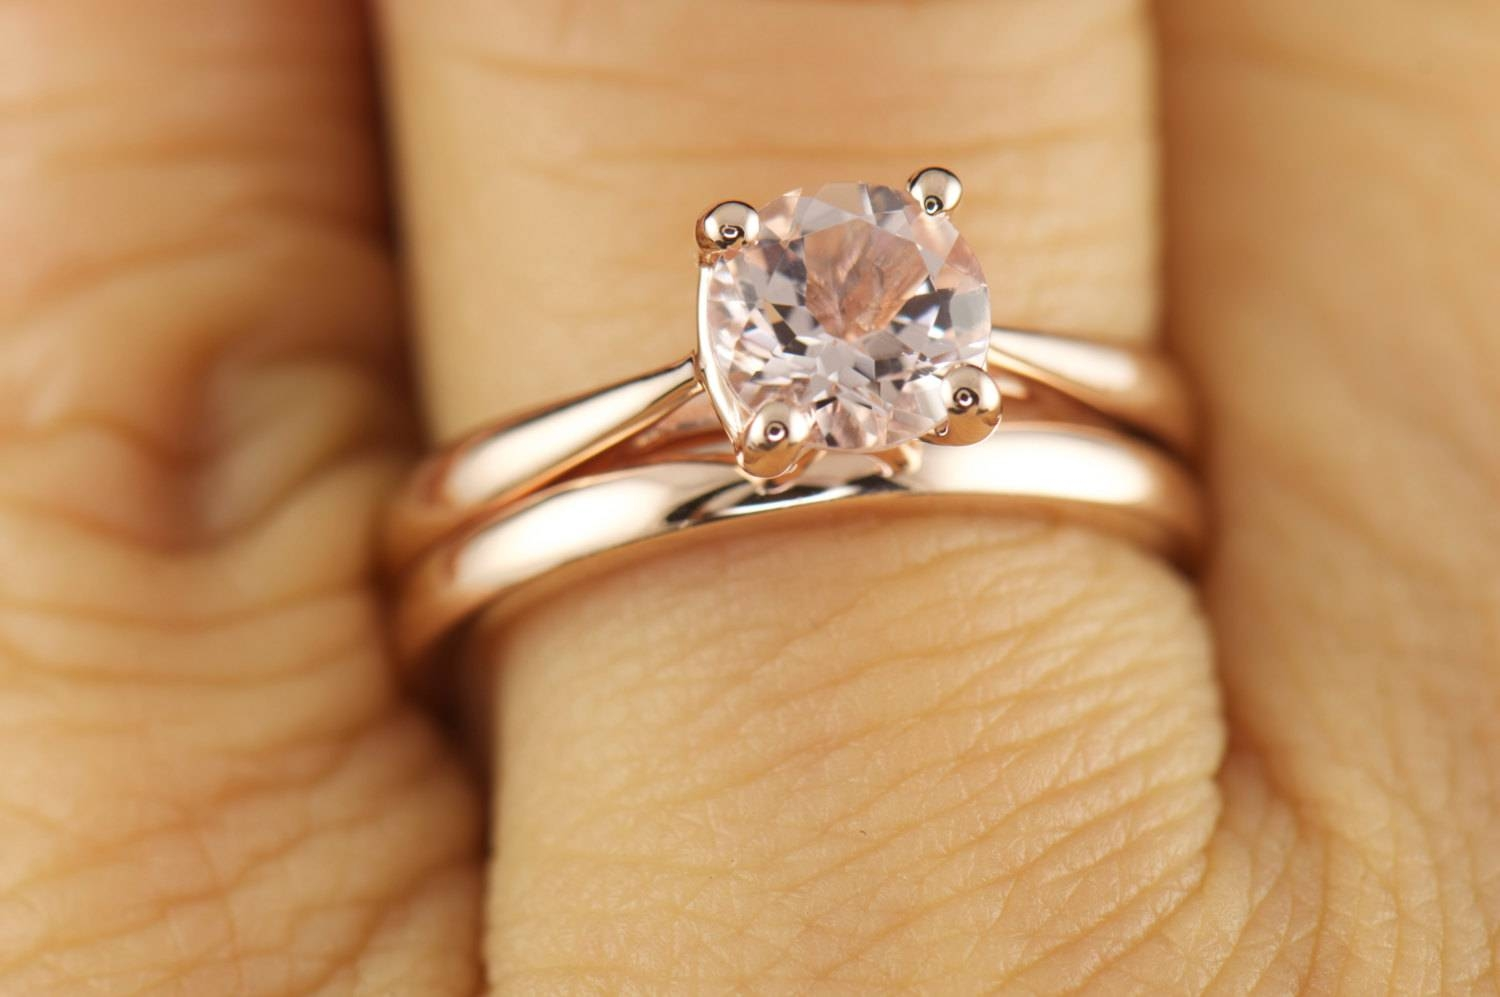 Talia & Kelsie Set Morganite Solitaire Engagement Ring In Pertaining To Recent 2mm Rose Gold Wedding Bands (View 11 of 15)